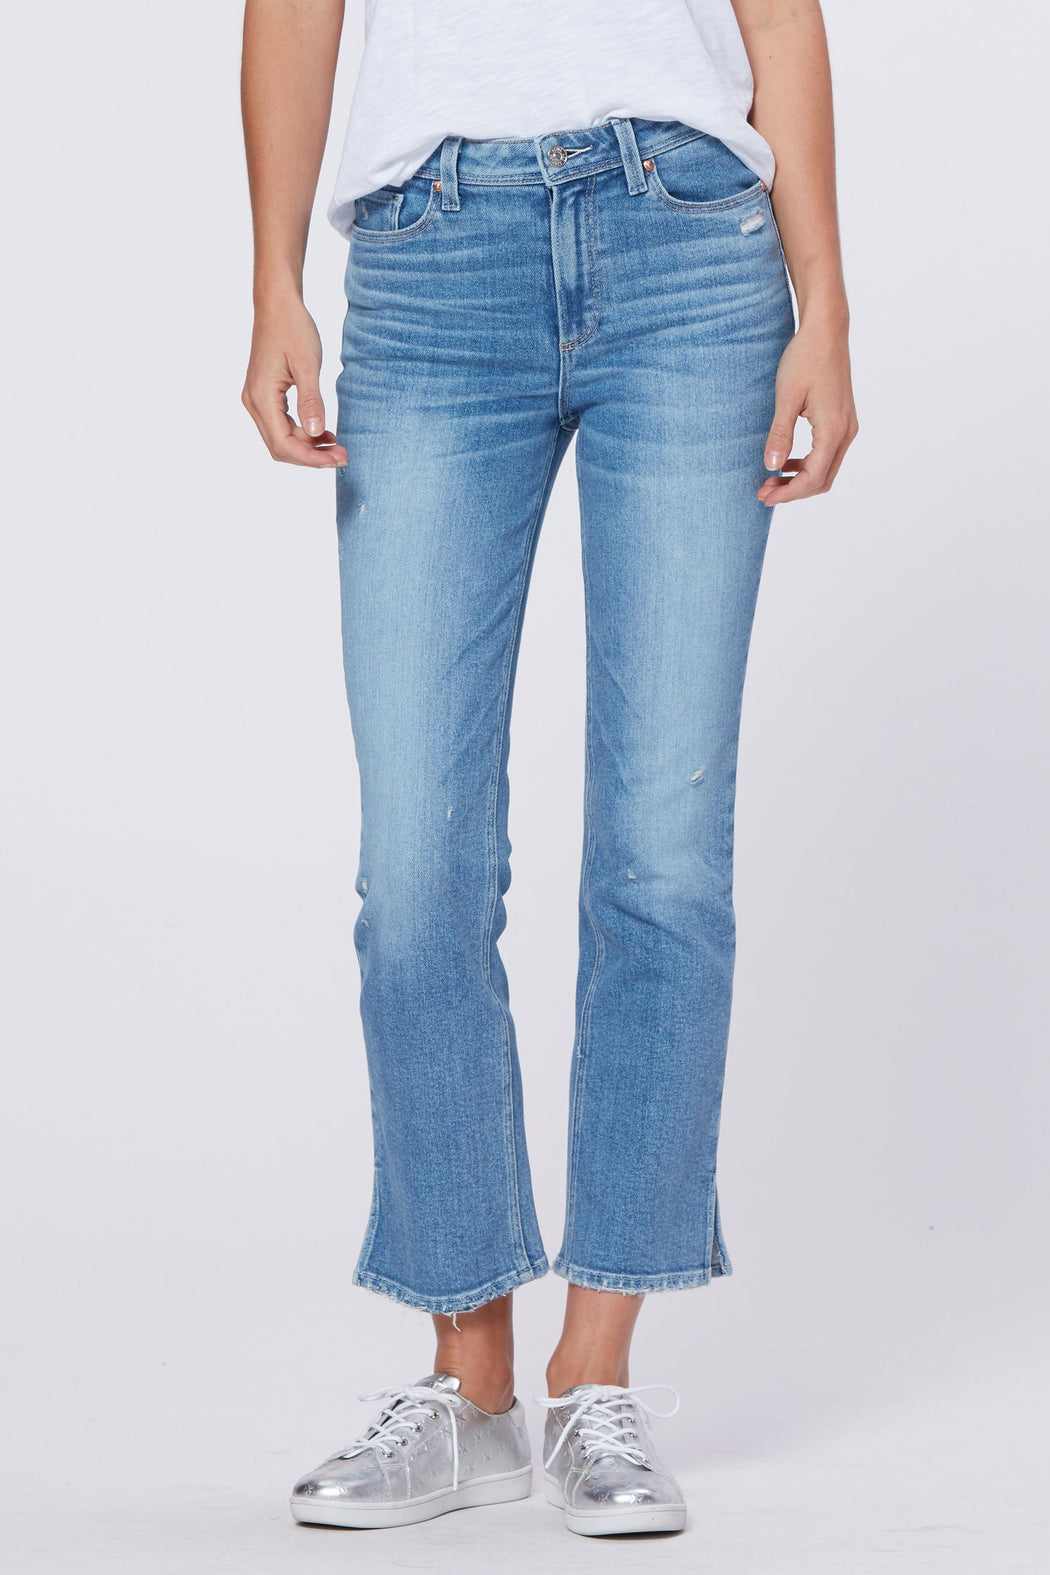 Paige Cindy Sea Spray Distressed | Buy Paige Jeans, NZ Free Shipping